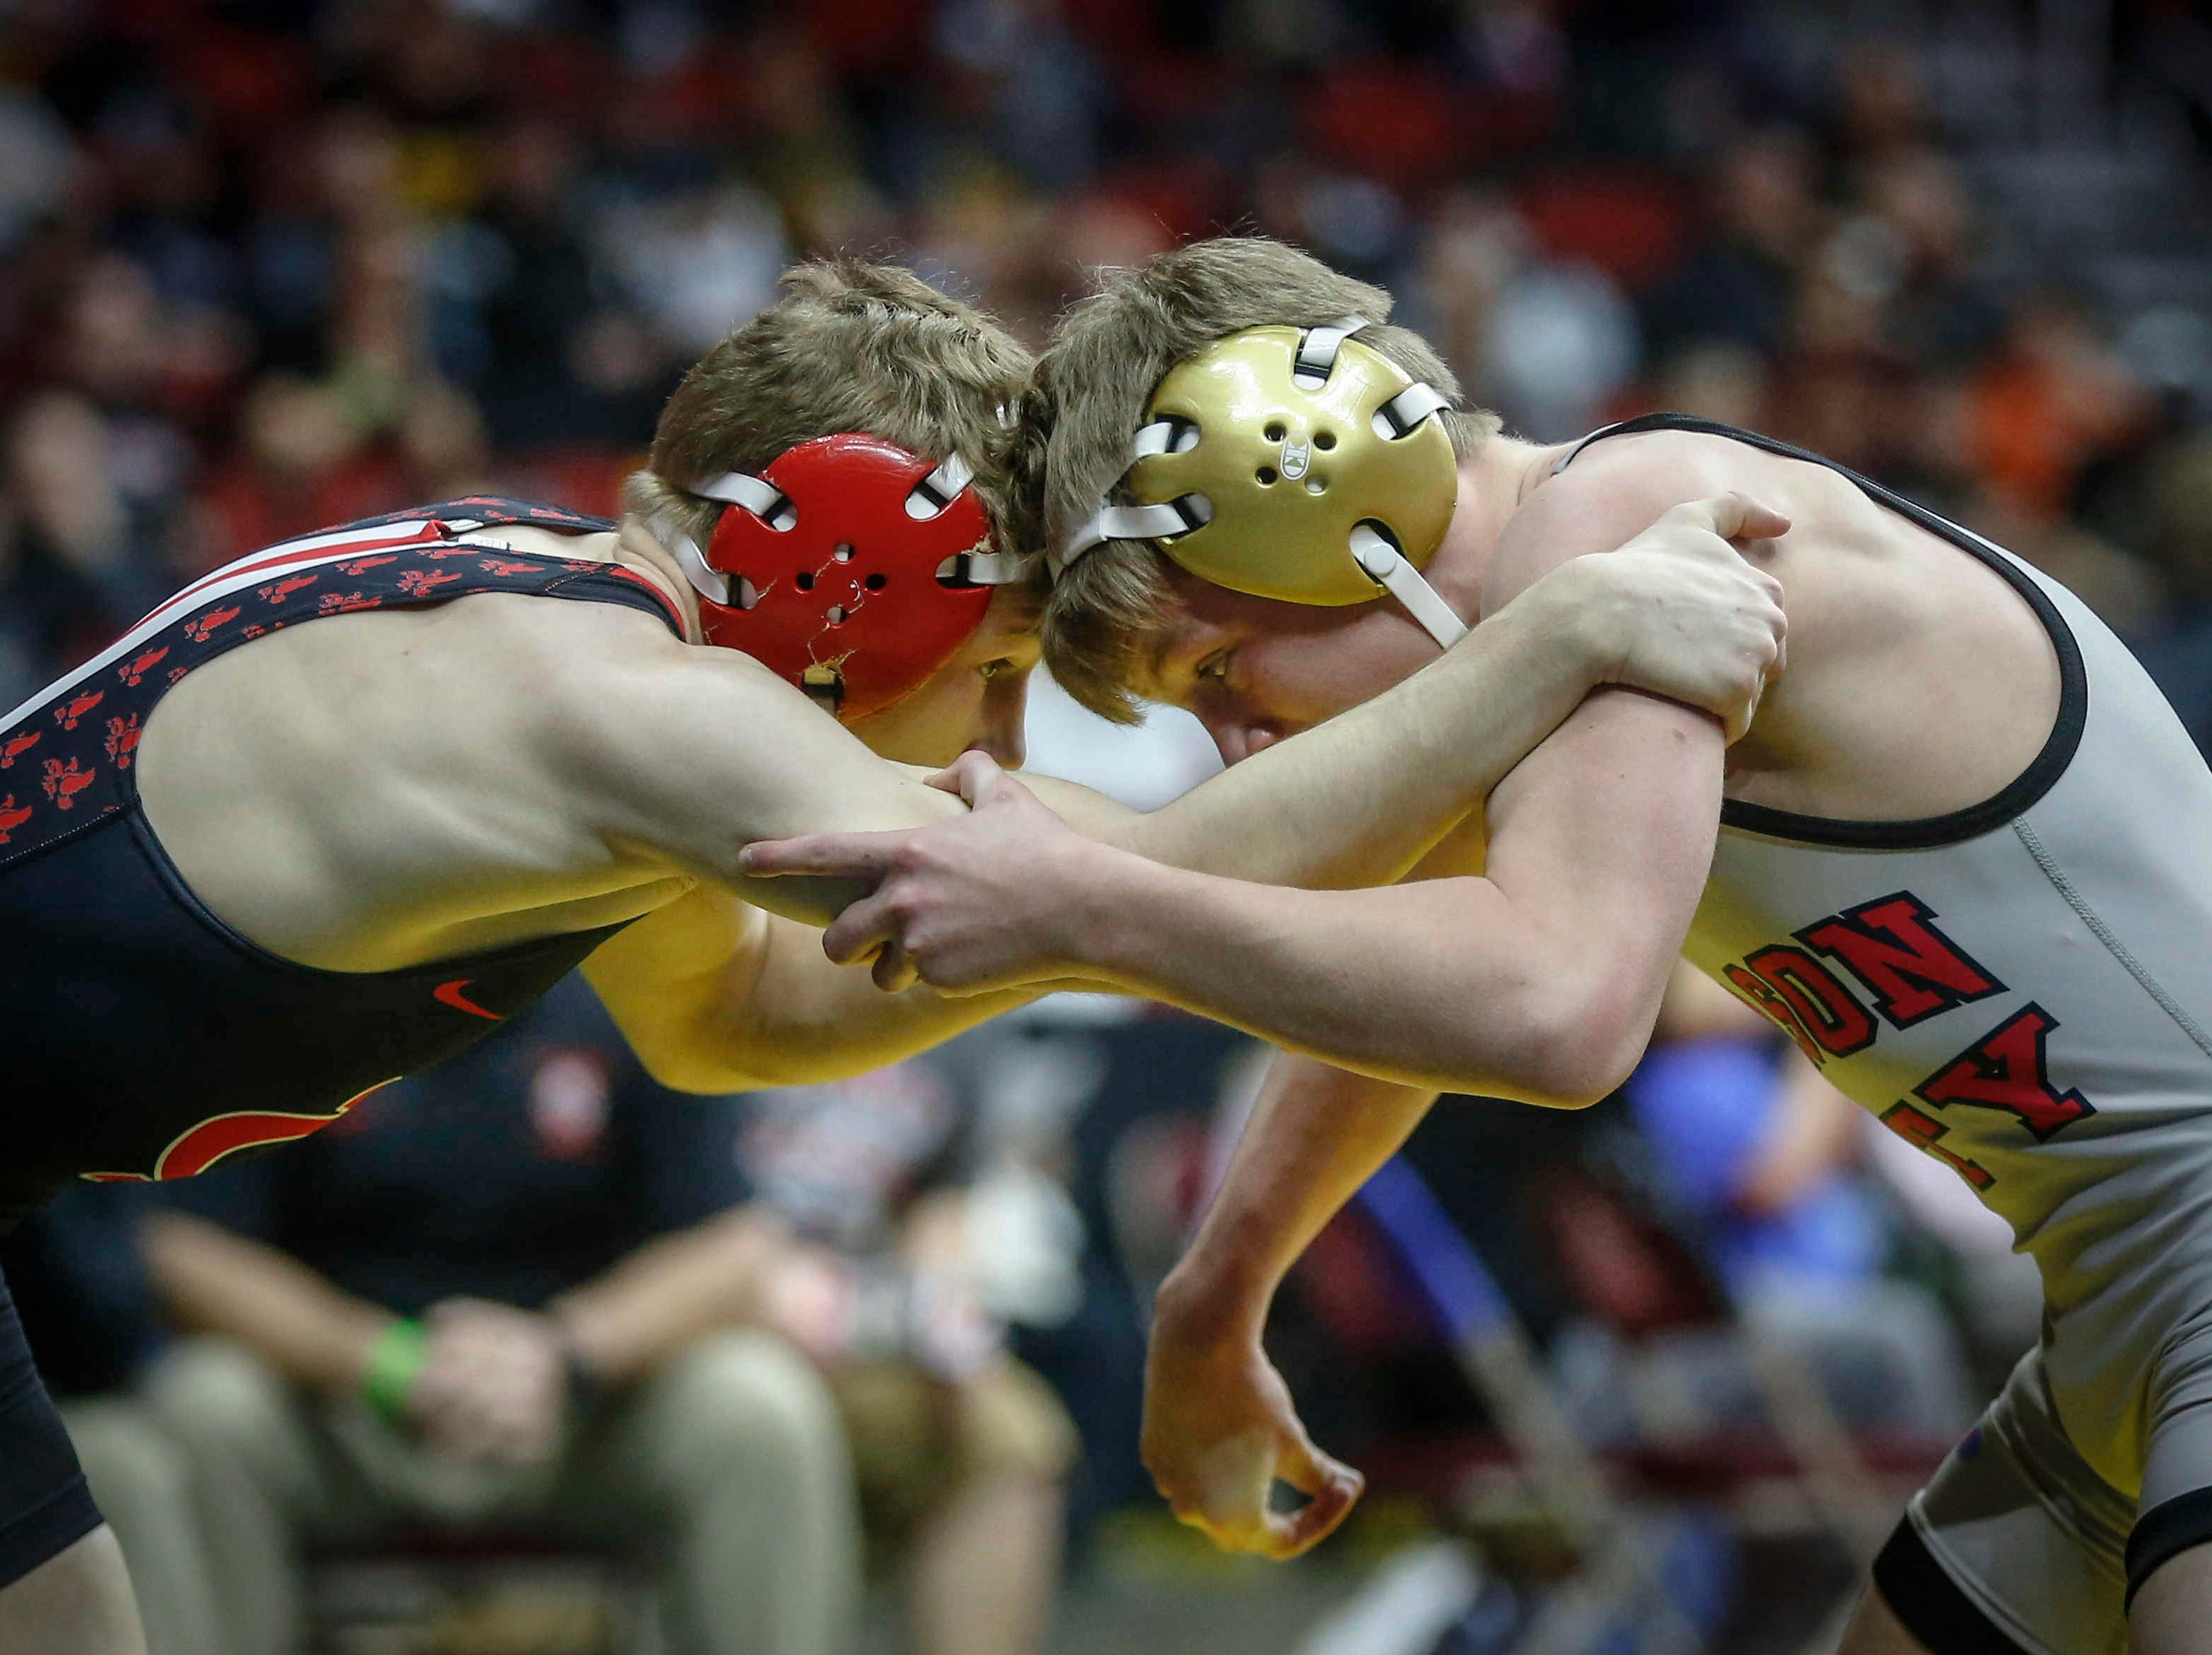 Iowa City High's Ethan Wood-Finley, left, locks up with Mason City's Jace Rhodes in their match at 106 pounds during the state wrestling quarterfinals on Friday, Feb. 15, 2019, at Wells Fargo Arena in Des Moines.